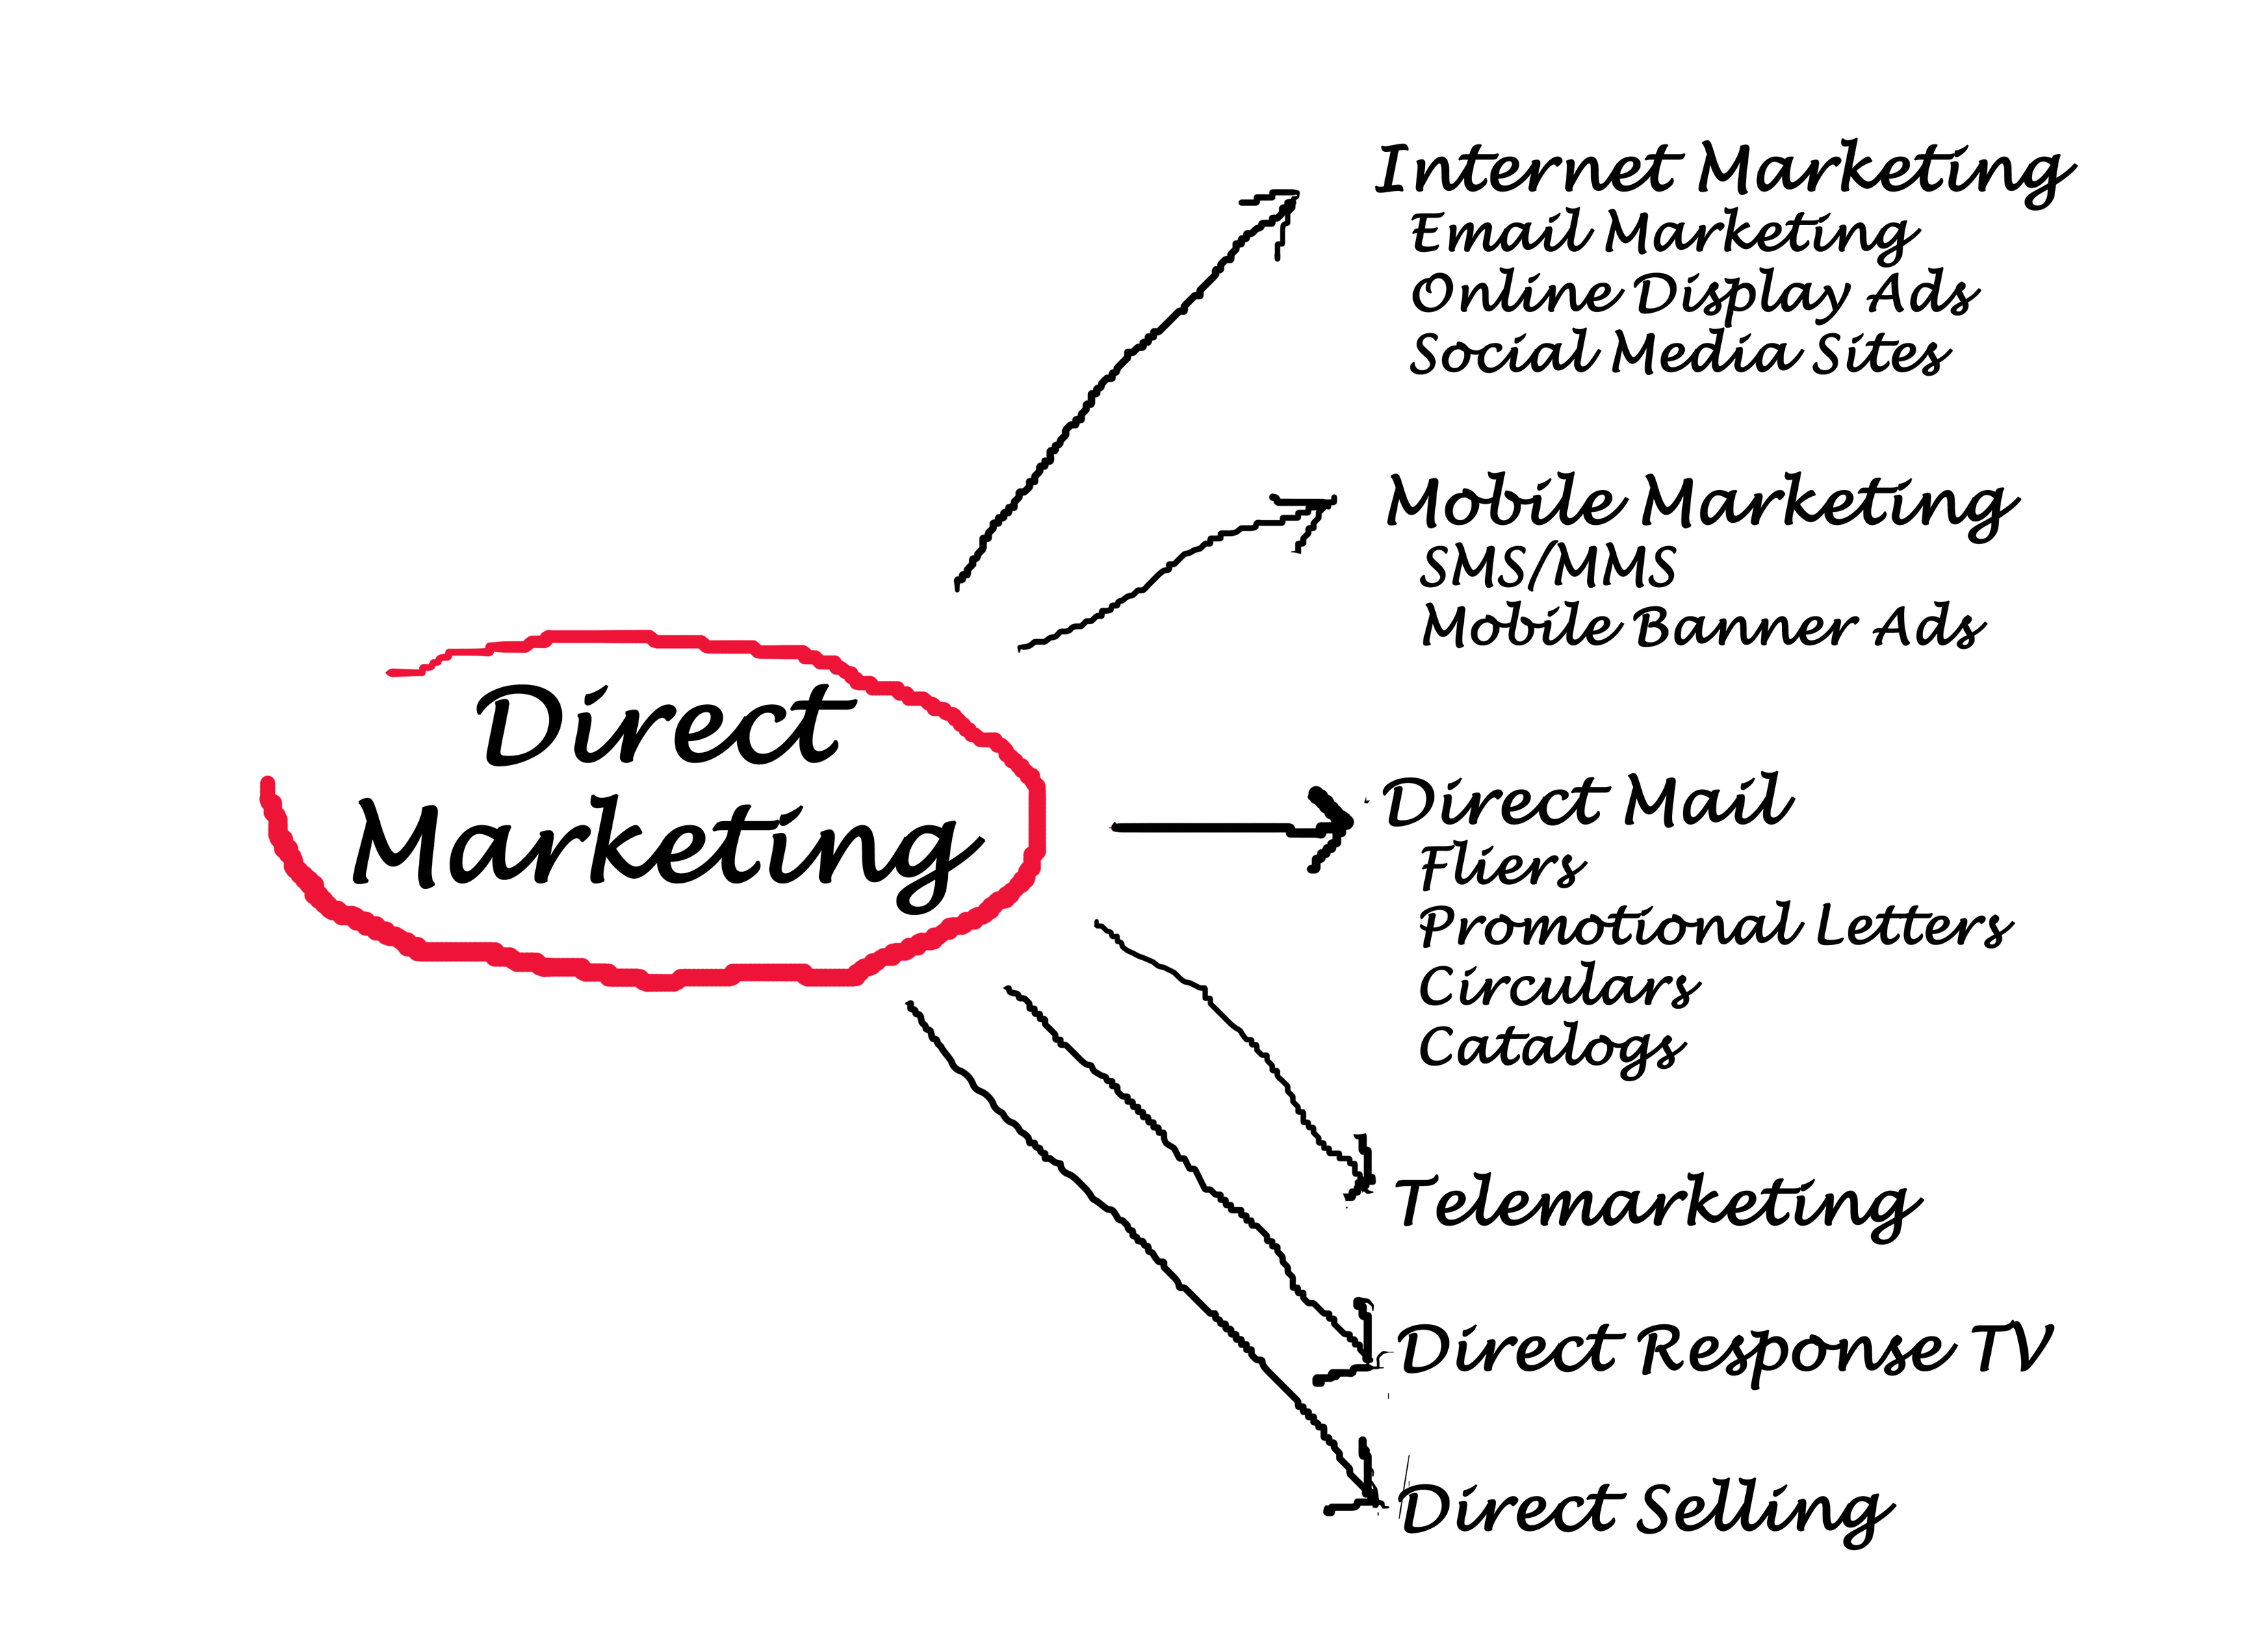 marketing strategies direct and online Steps and examples of how to successfully implement a simple and effective  direct marketing strategy learn the science behind direct marketing online, and  the.